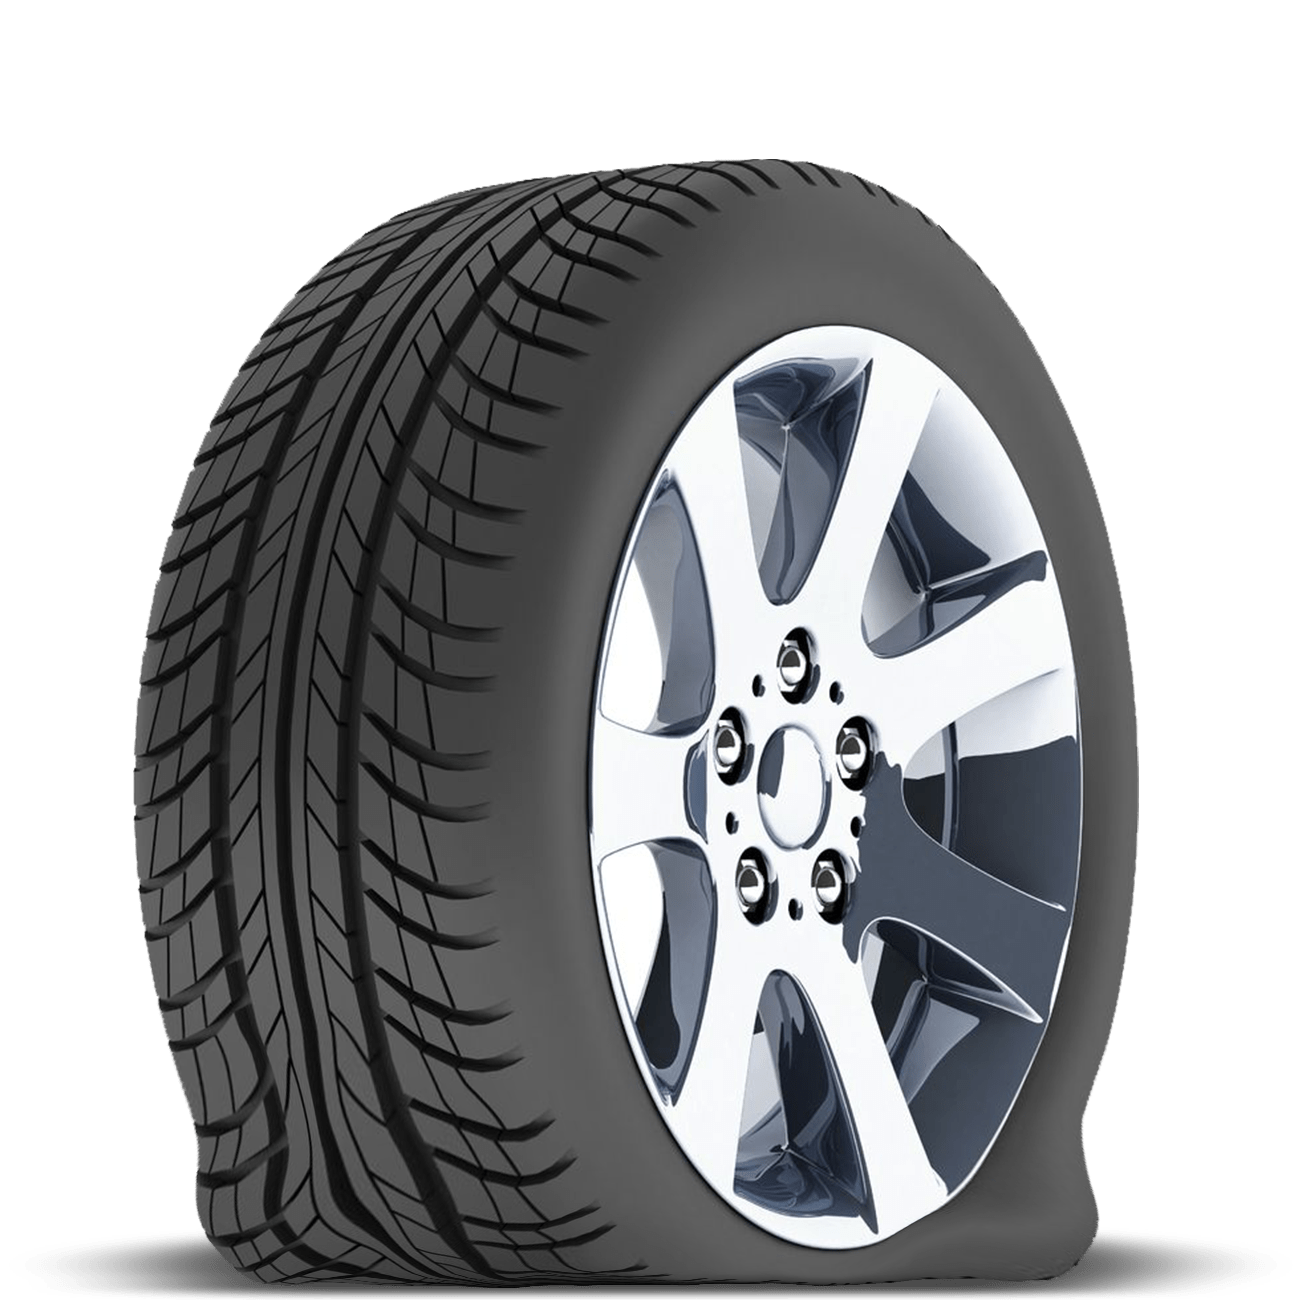 freeuse download flat tire clipart #67921720